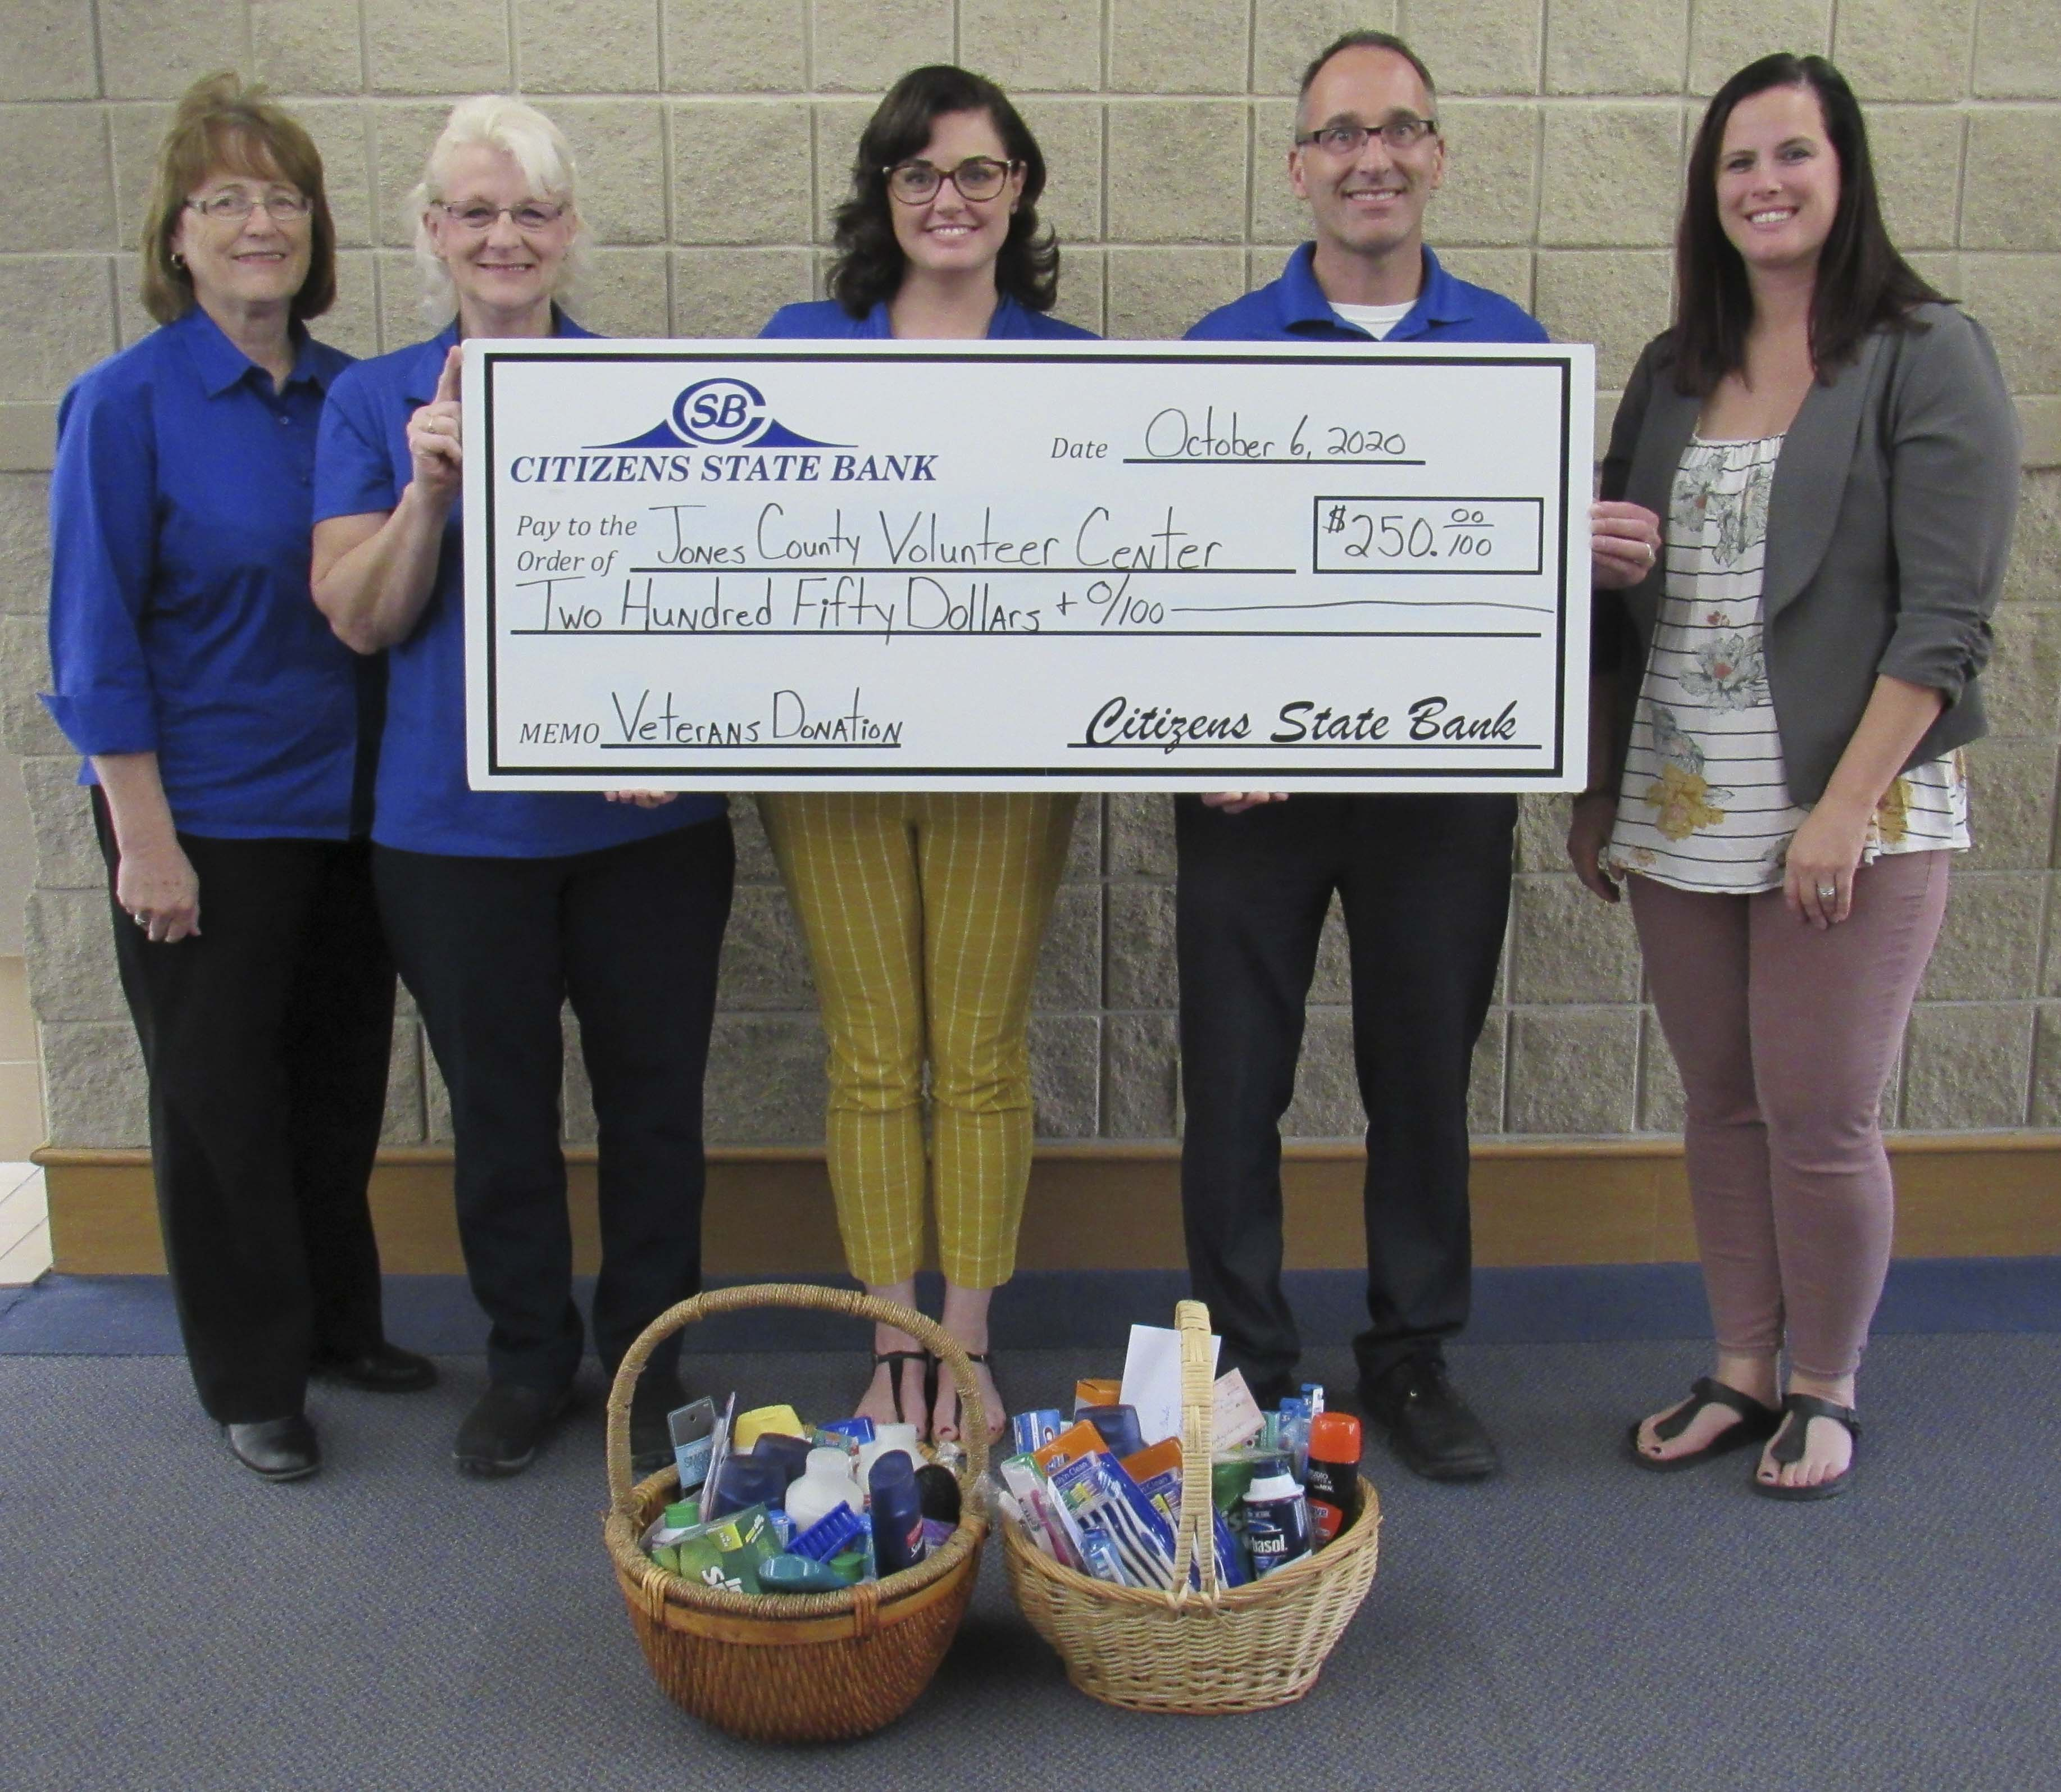 Citizens State Bank in Monticello donated $250 and personal hygiene items to the Jones County Volunteer Center's annual Personal Supply Drive. The event honors 9/11 and Patriot Day. From left are CSB employees Audrey Savage, Karla Kelley, Staci Klocke, Dave Sunlin, and Volunteer Center Director Amy Keltner. (Photo by Kim Brooks)